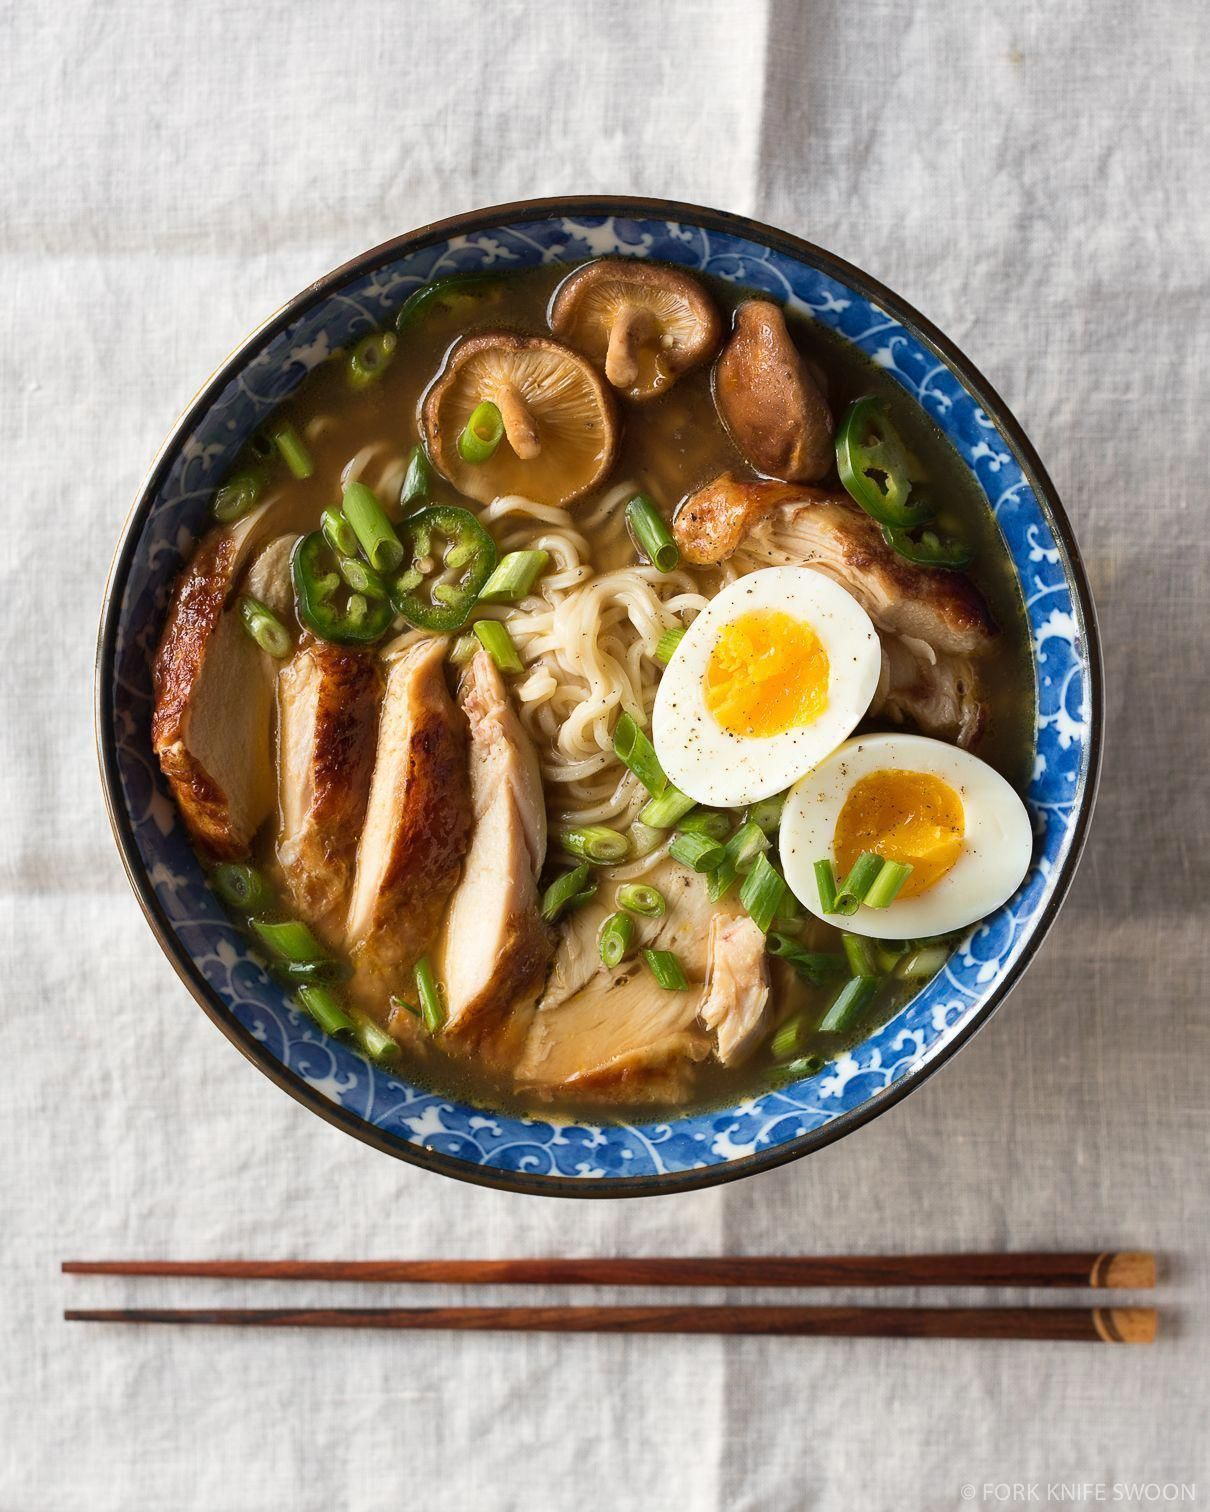 This ramen is SO good! Easy homemade chicken ramen, with a flavorful broth, roasted chicken, fresh veggies, lots of noodles, and a soft cooked egg. Inspired by traditional Japanese ramen, but on the table in under an hour. Find the recipe on #ramen